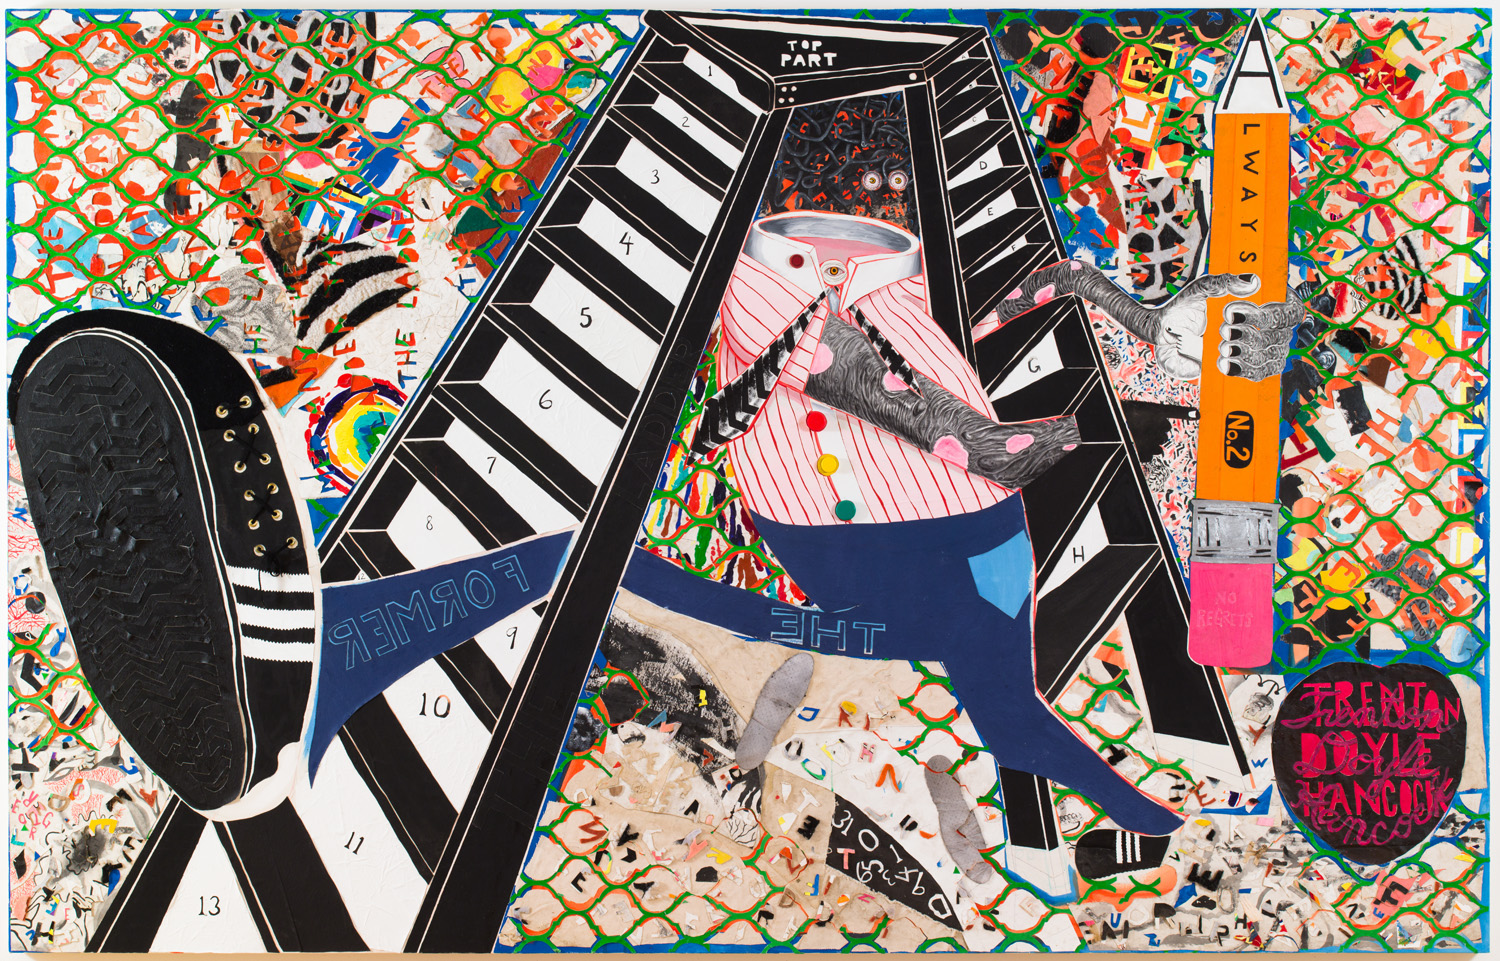 colorful painting with interlacing elements and characters surrounding large disembodied legs with leaping foot